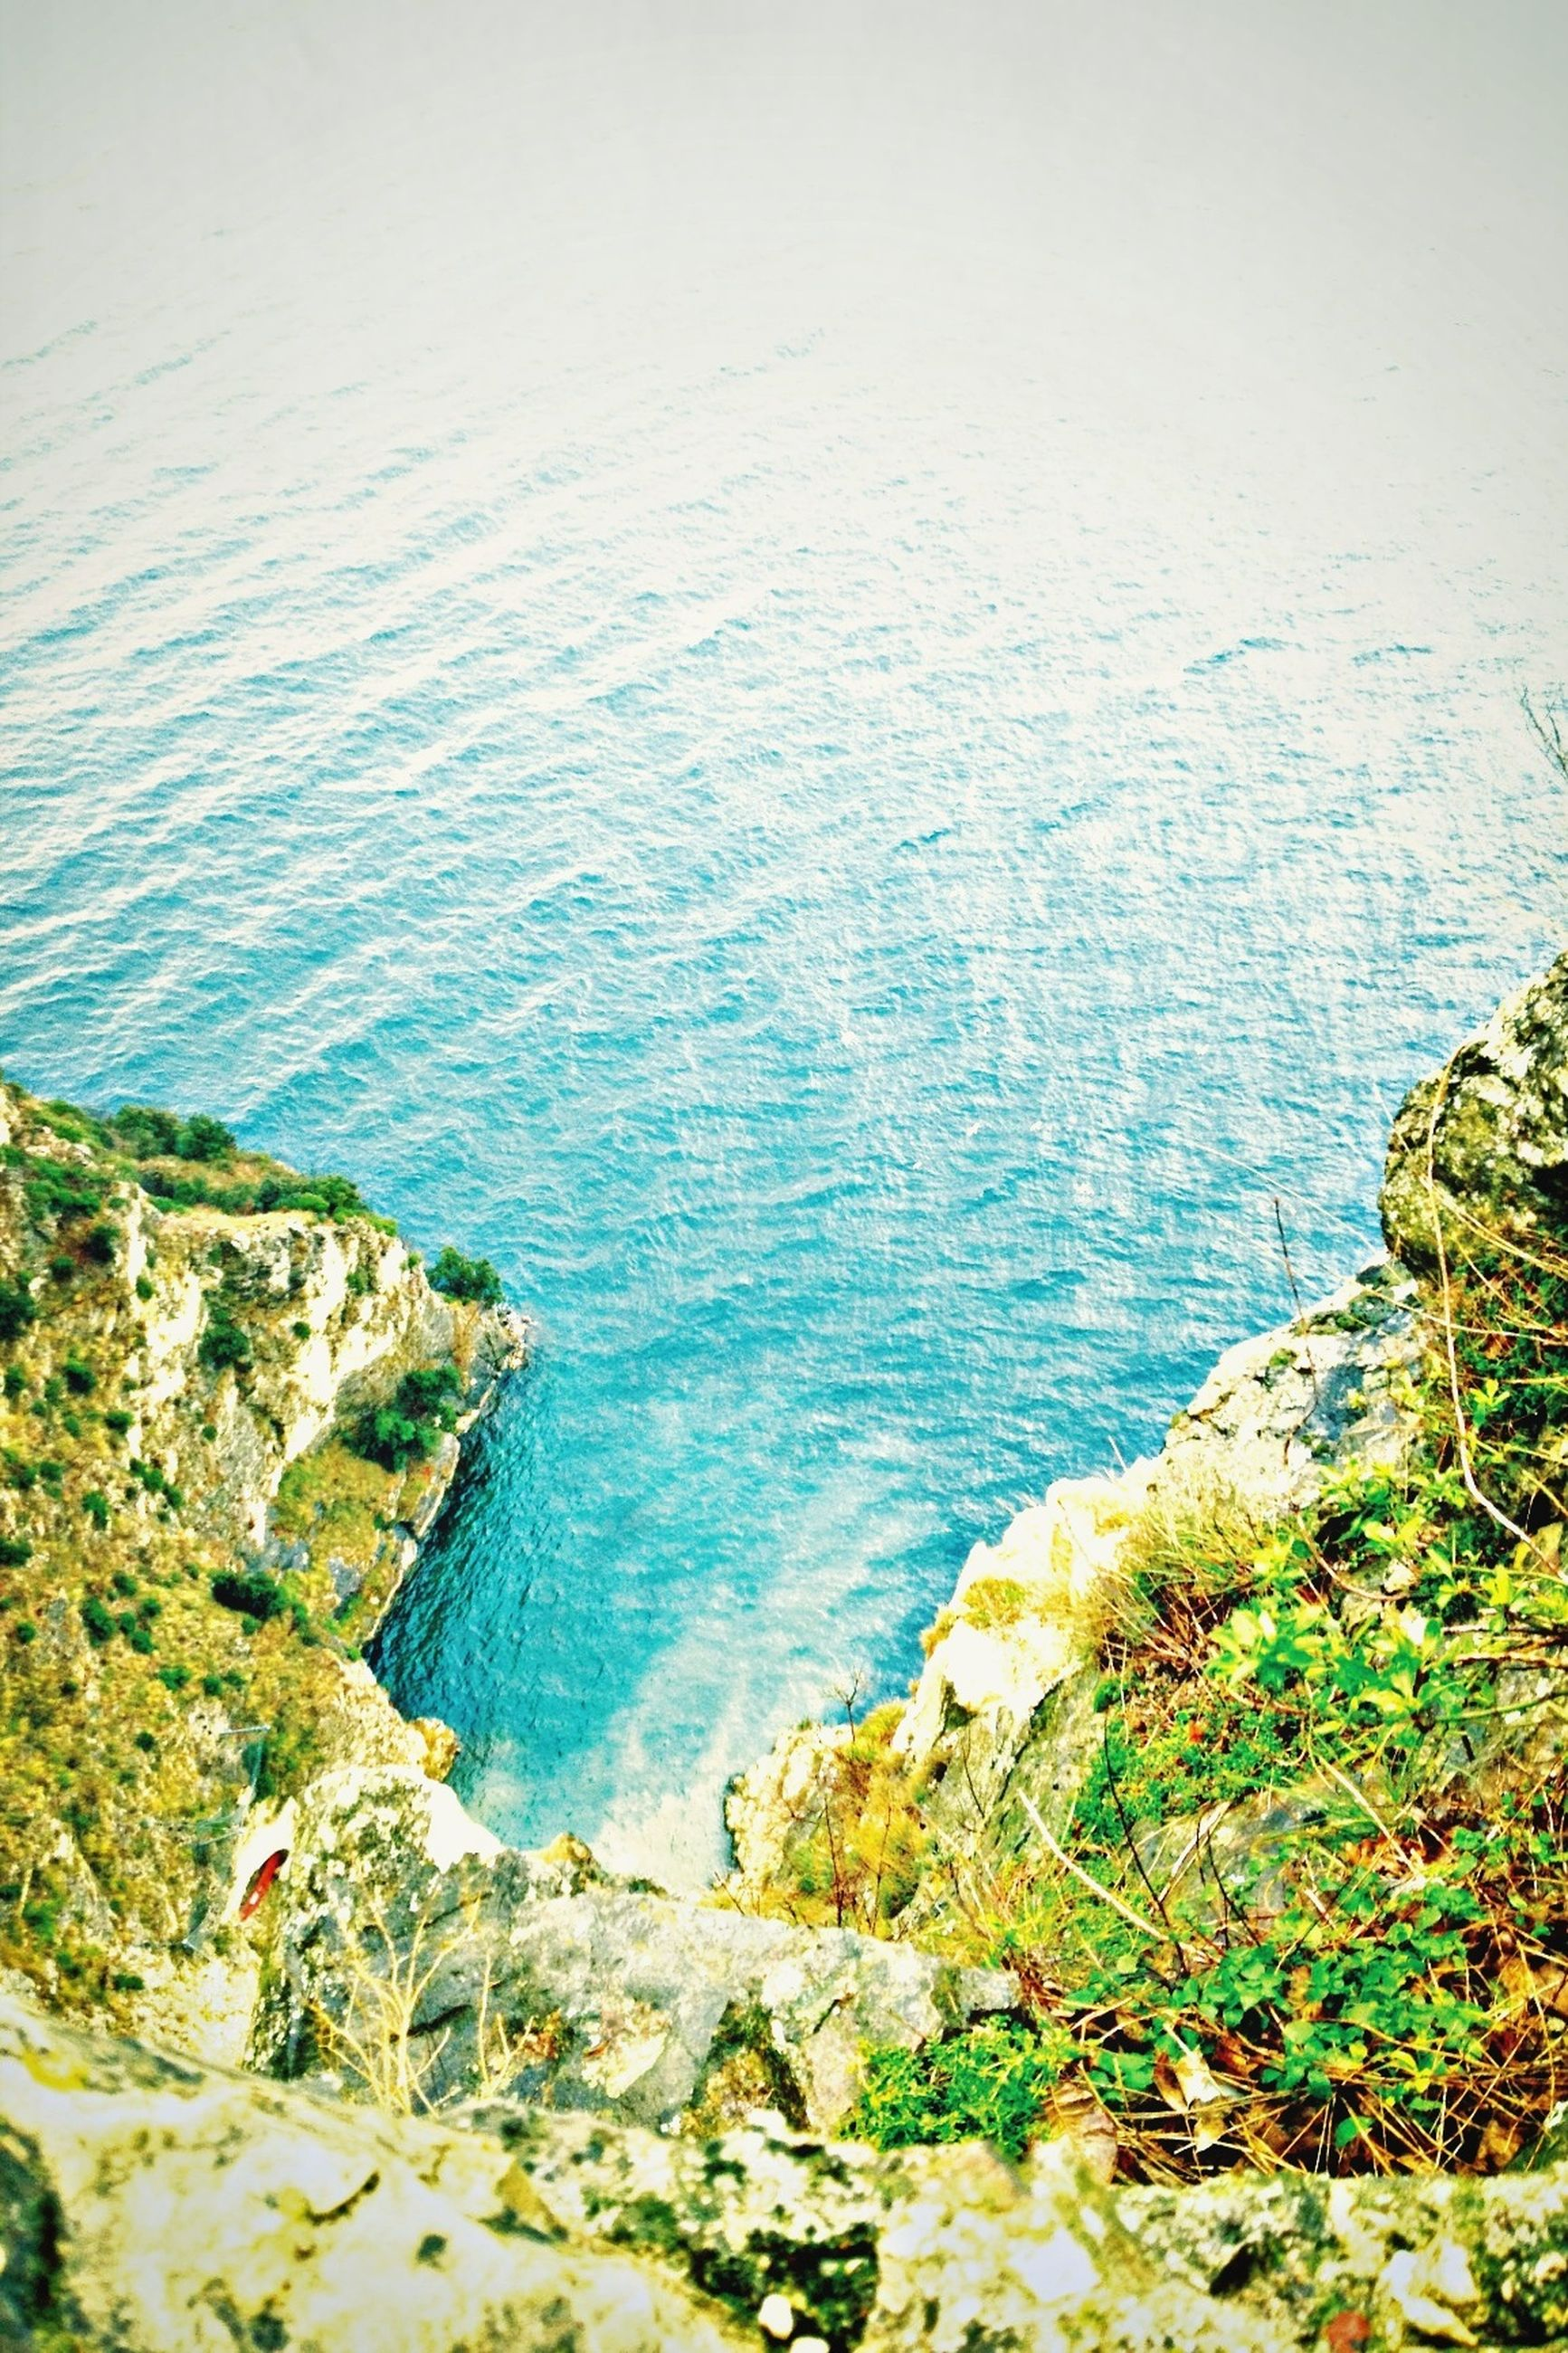 water, sea, scenics, tranquil scene, tranquility, beauty in nature, high angle view, nature, rock - object, horizon over water, idyllic, coastline, day, rock, rock formation, cliff, plant, blue, outdoors, non-urban scene